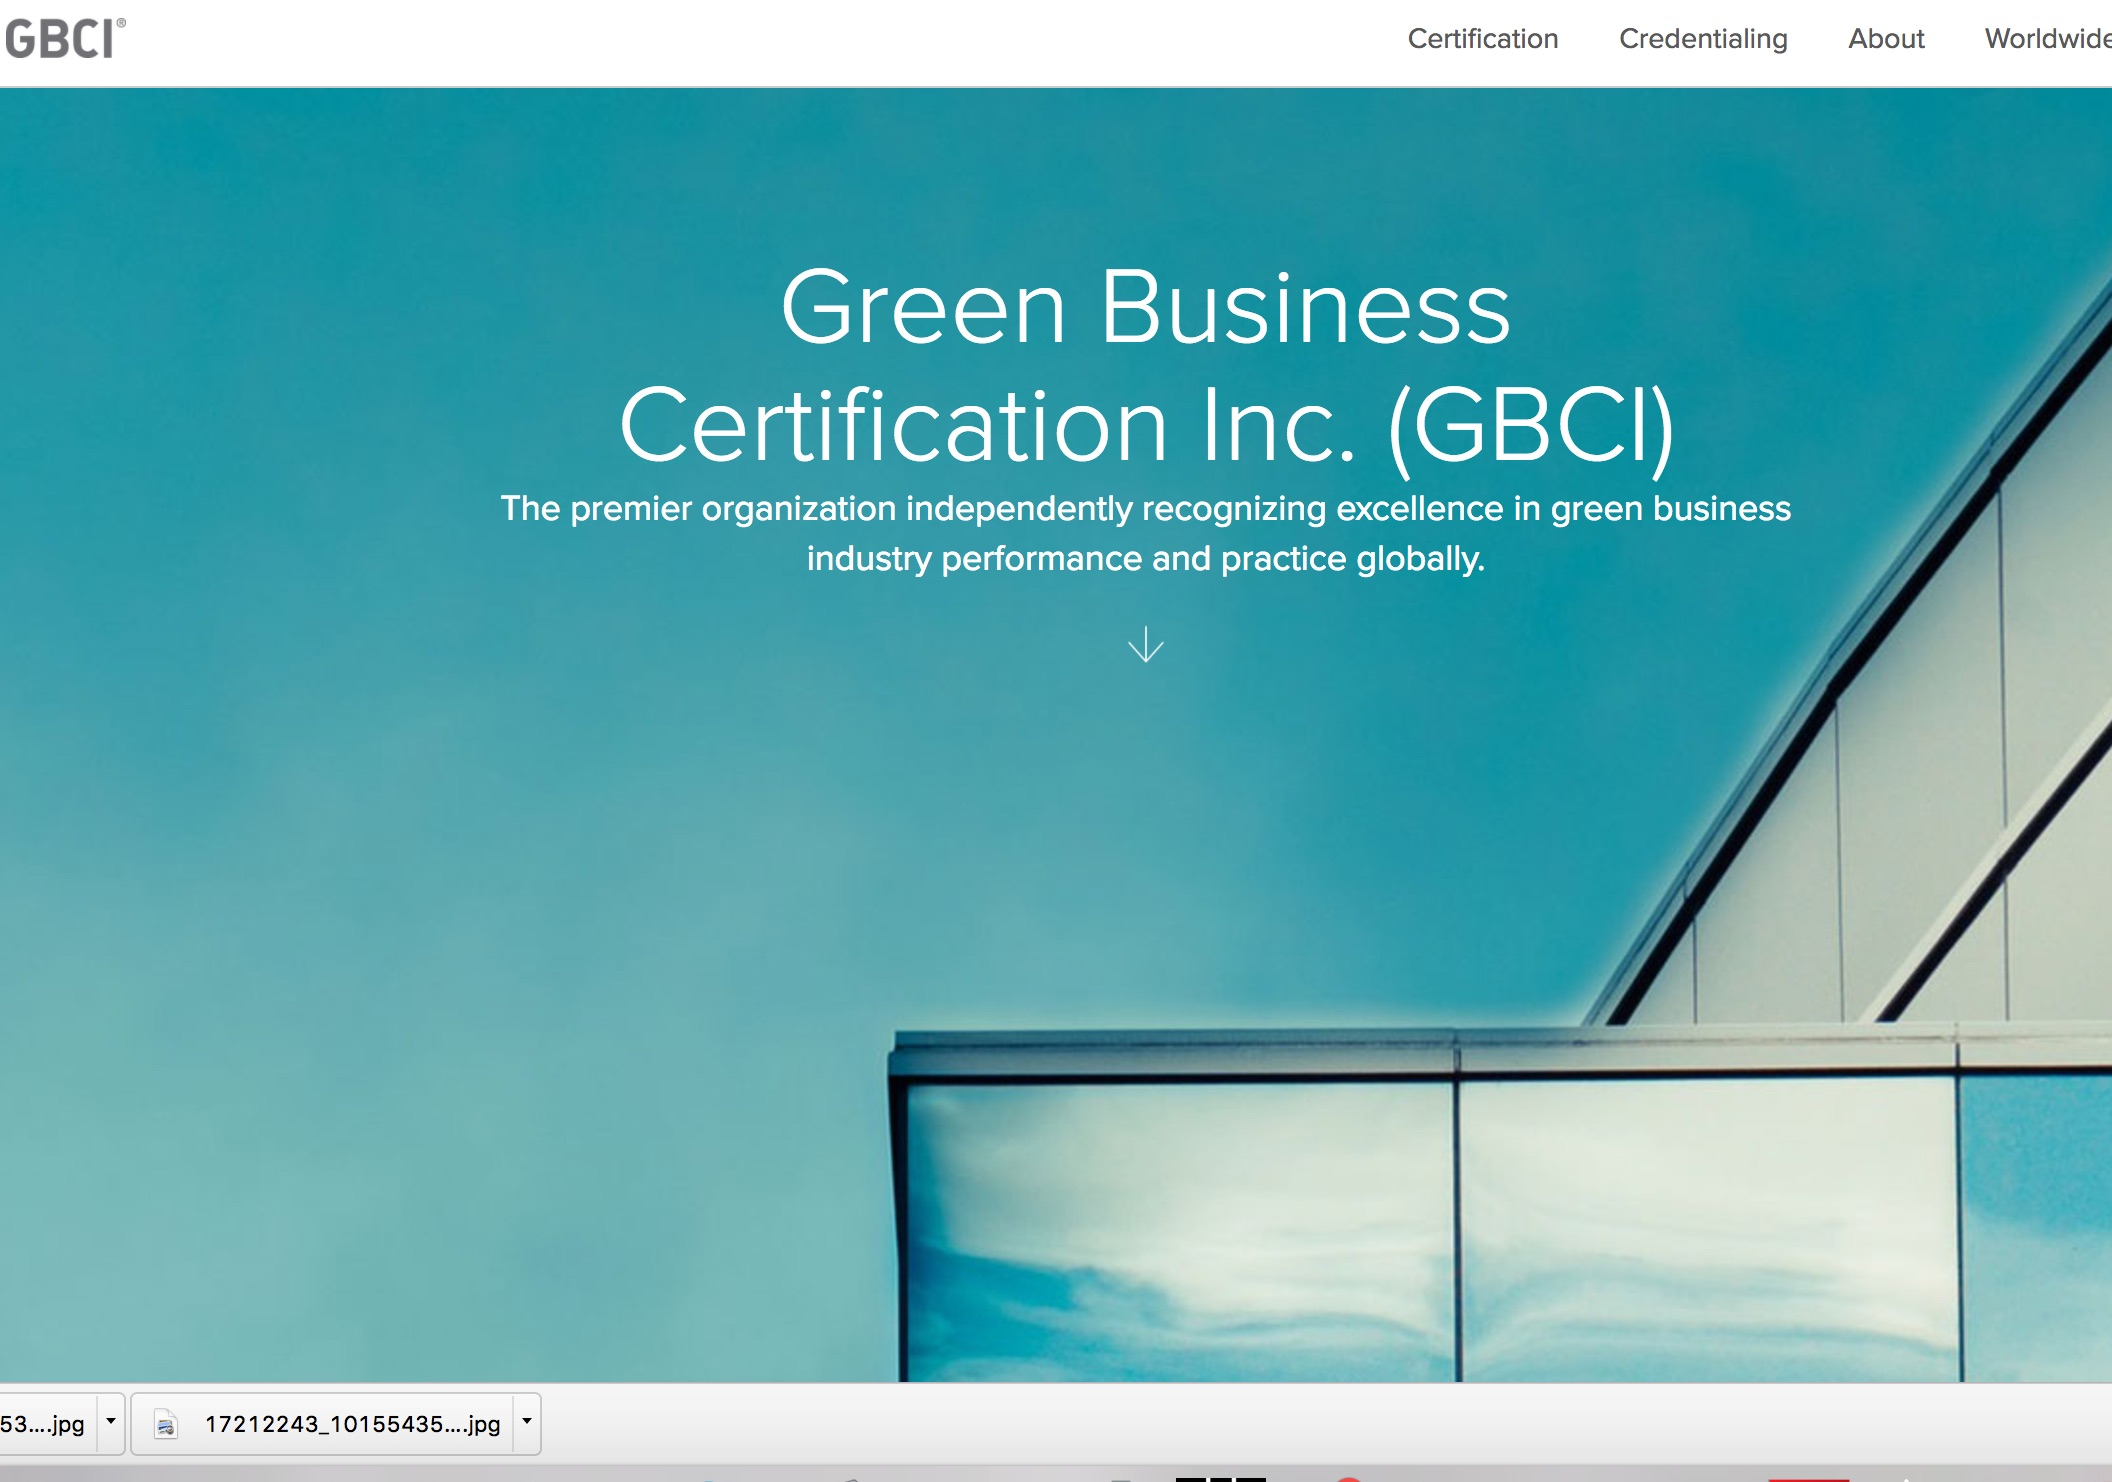 Canada Green Building Council And Green Business Certification Inc